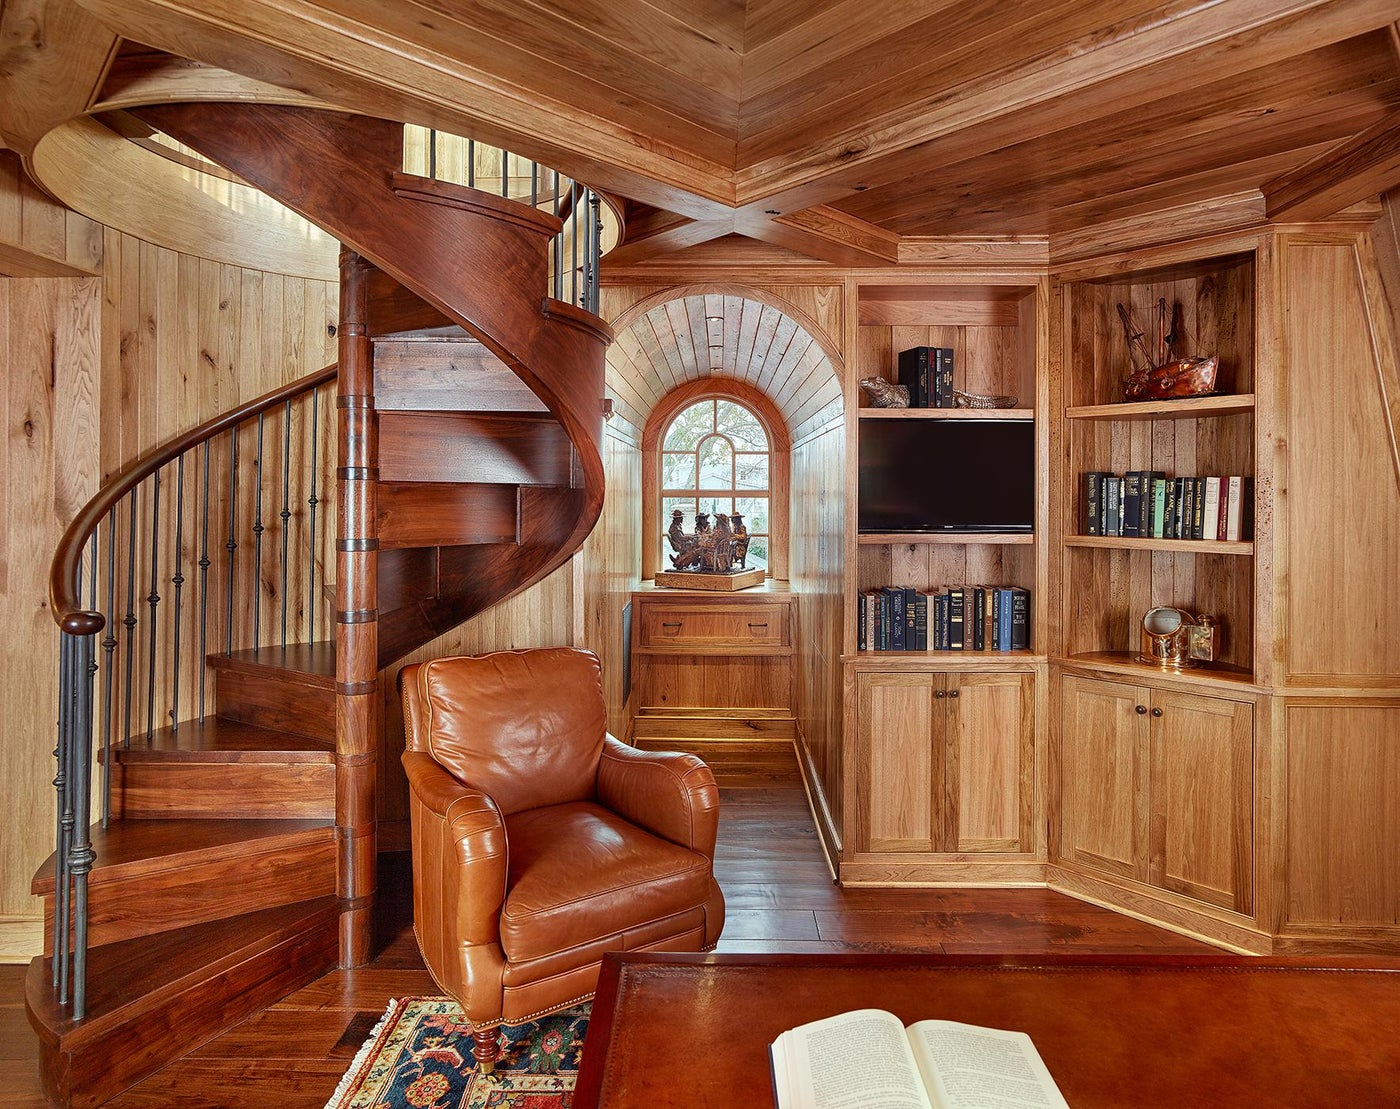 Butternut Wood Paneled Library with Wood Spiral Stair and Arched Window